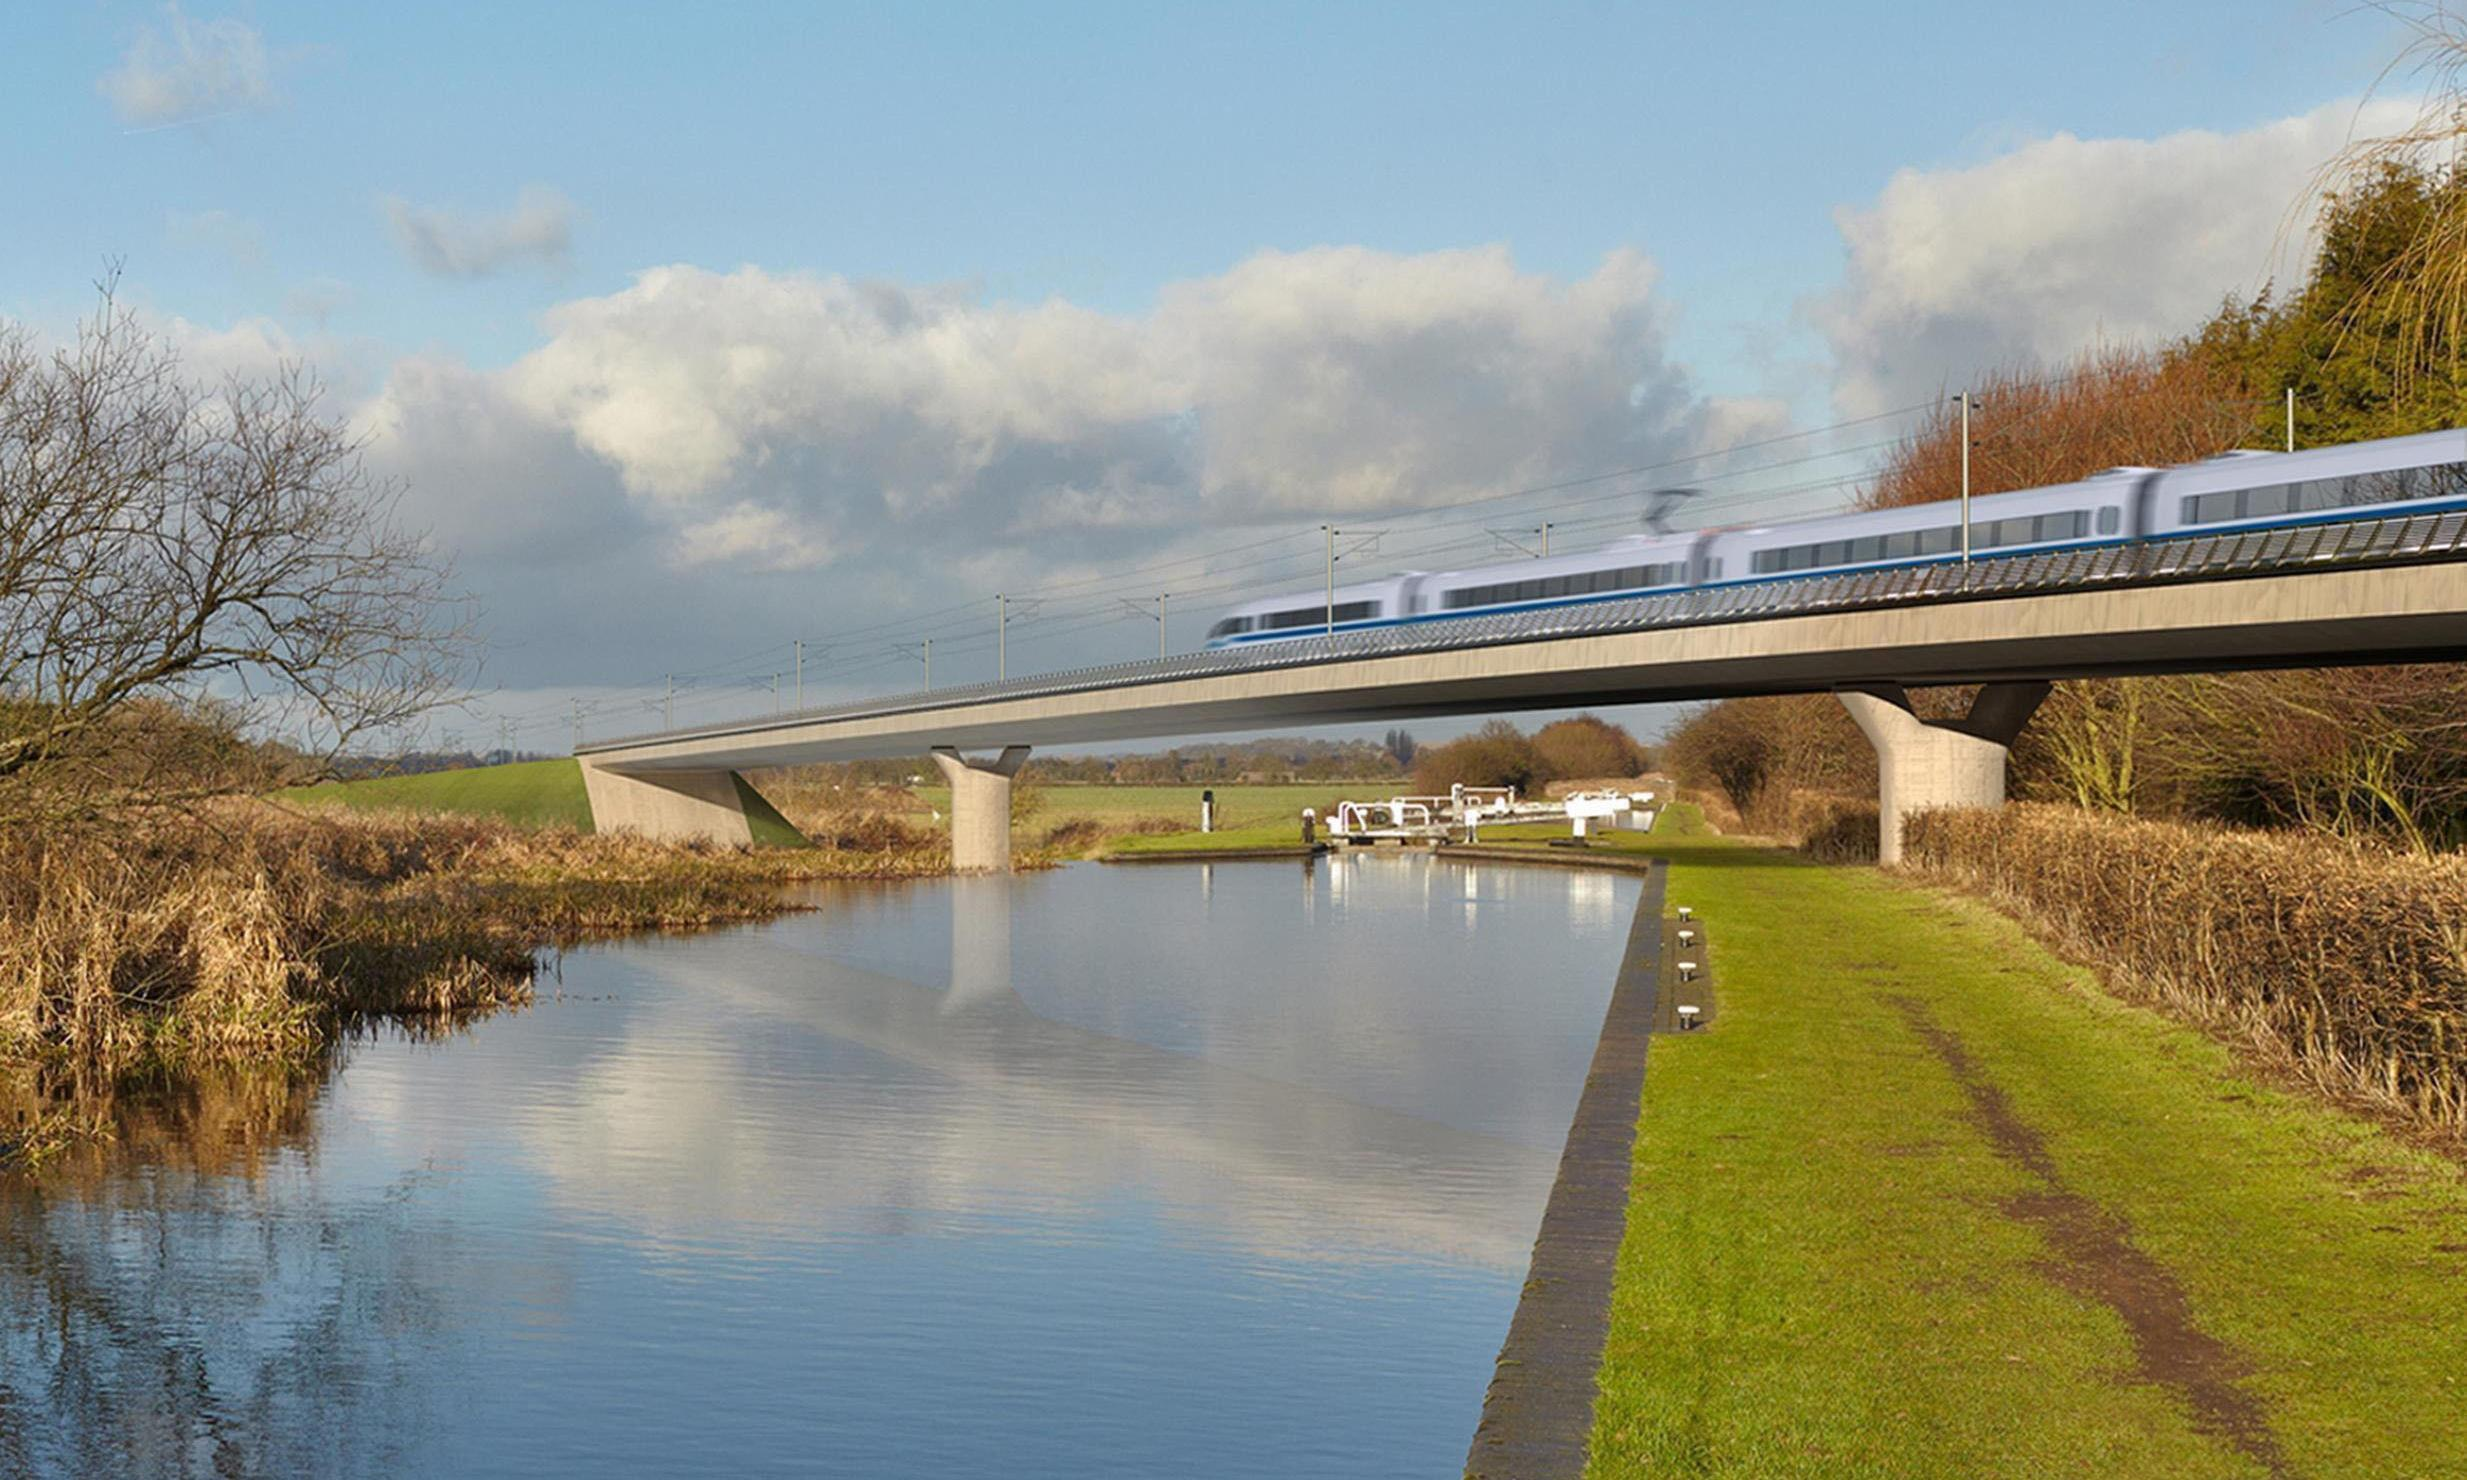 This is a final chance to scrap HS2. What the north really needs is 'HS3'